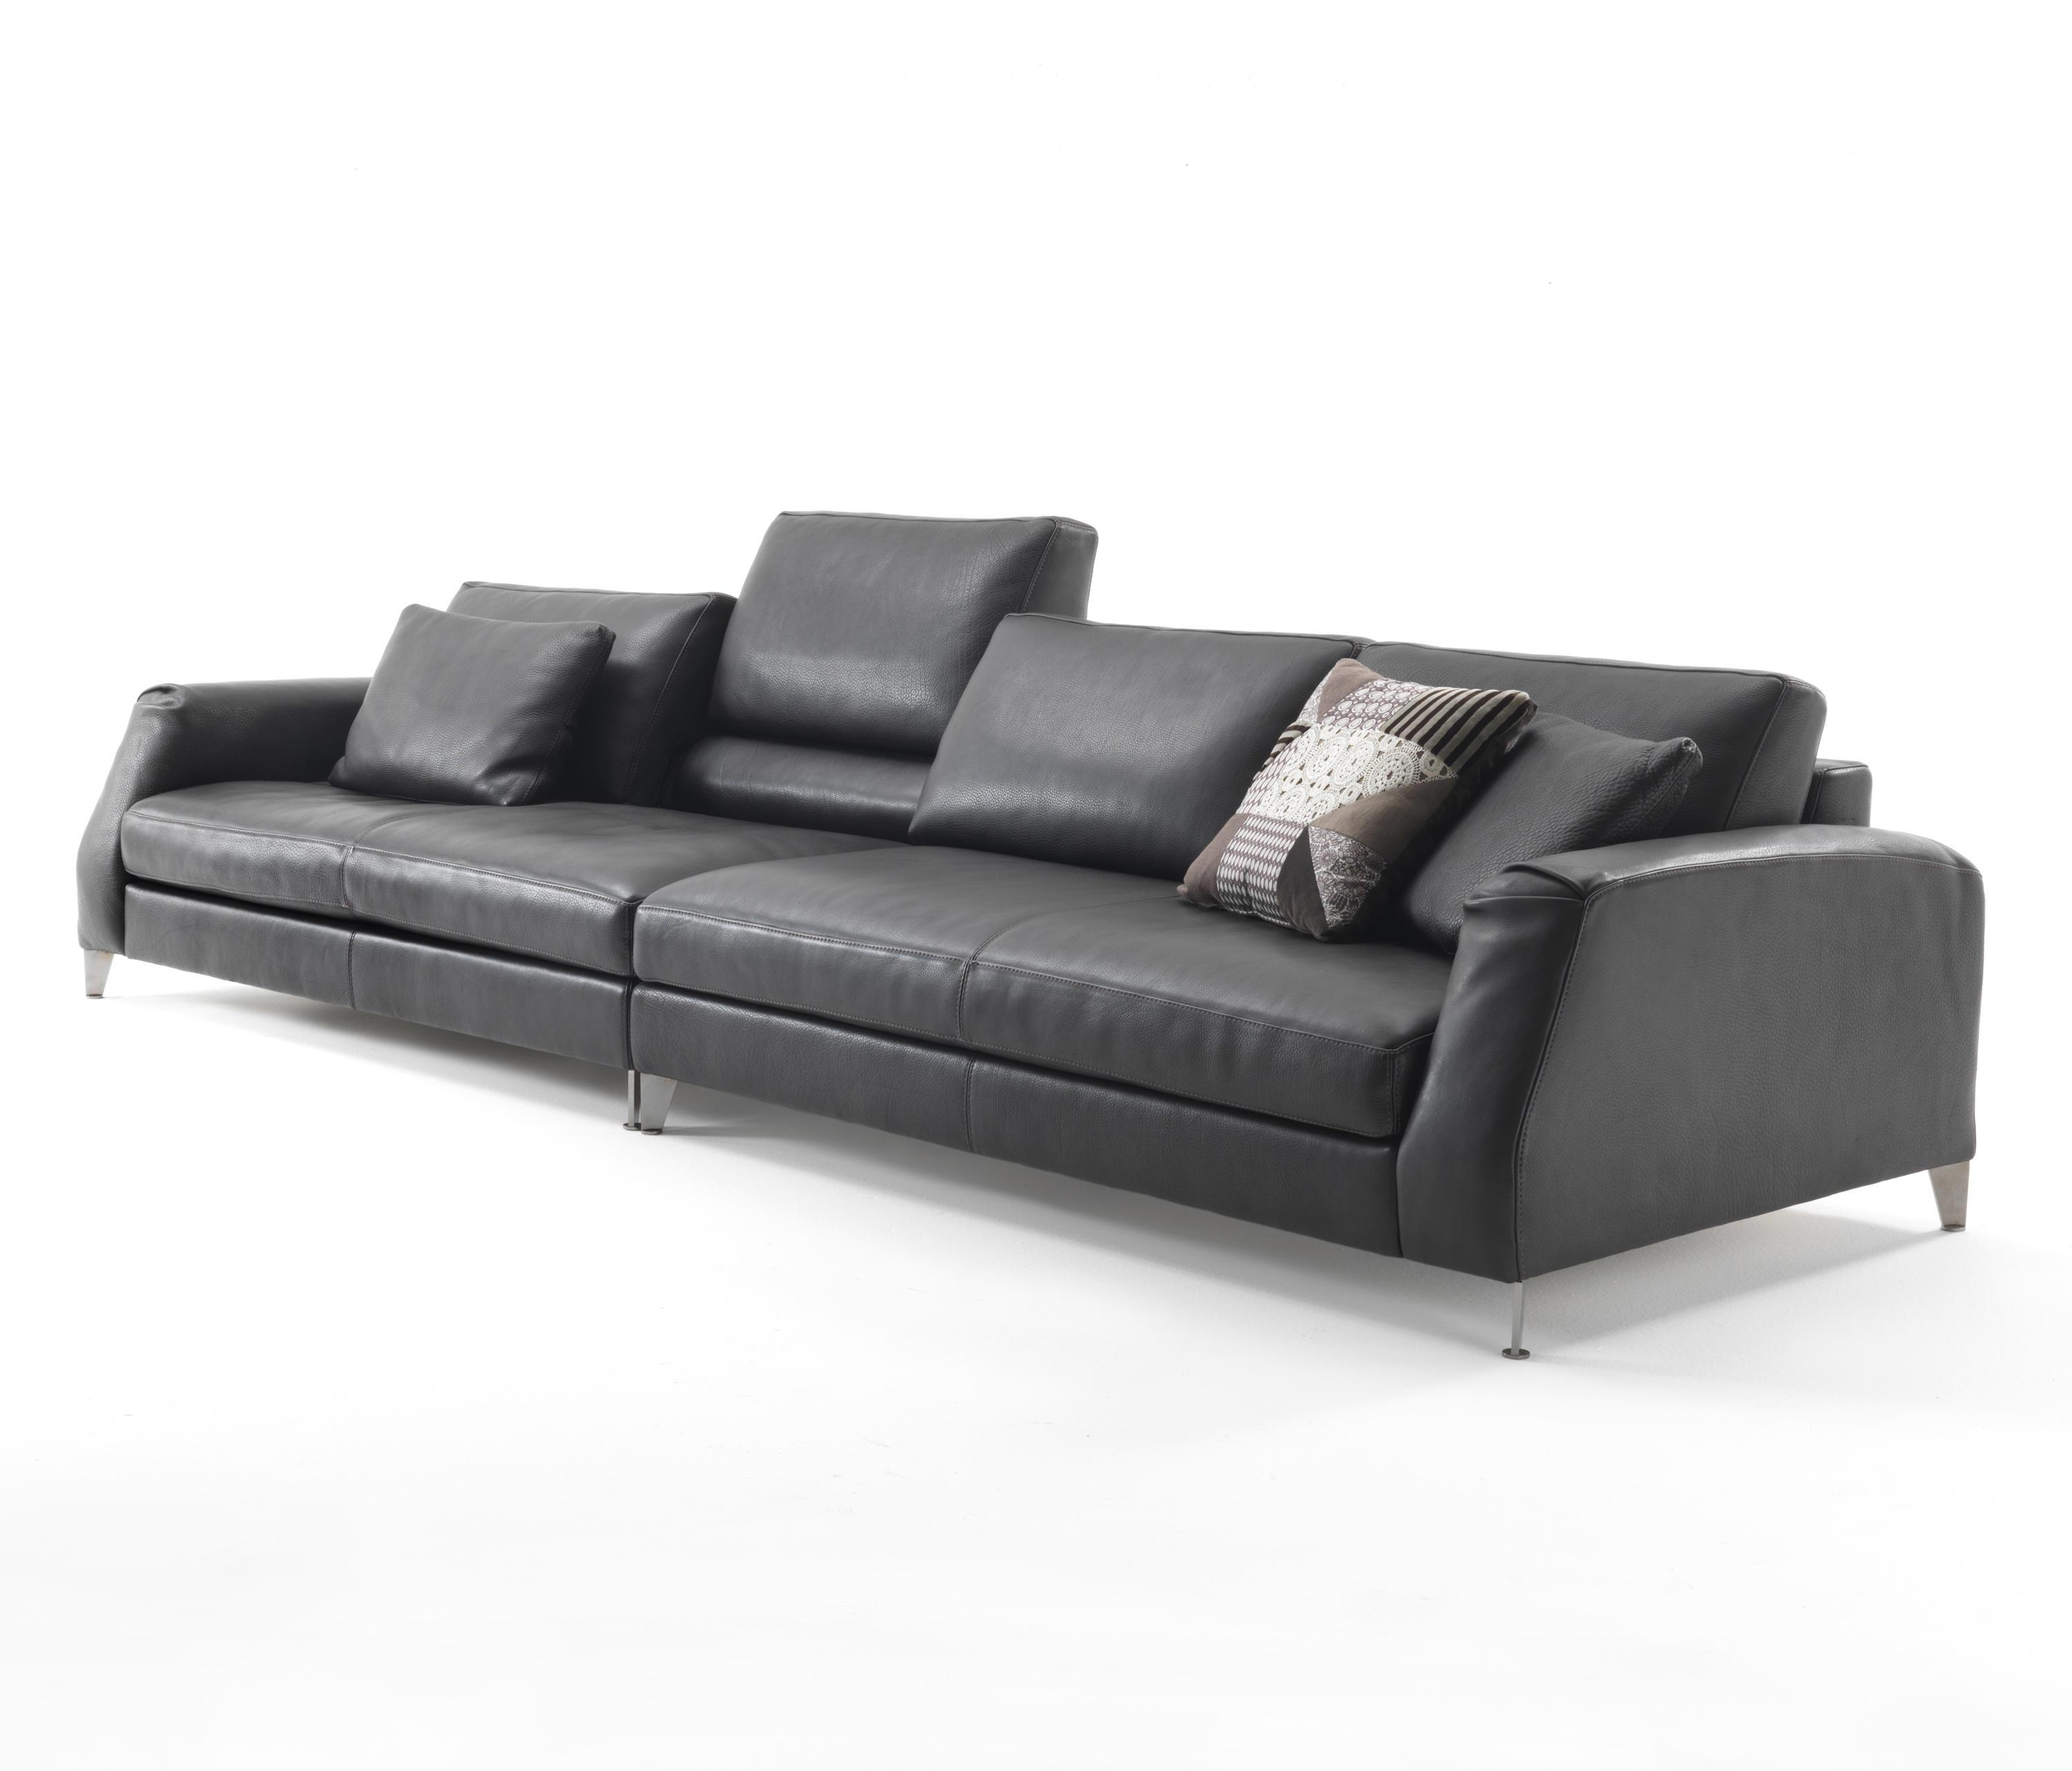 Davis Class – Sofas From Frigerio | Architonic In Davis Sofas (View 16 of 20)